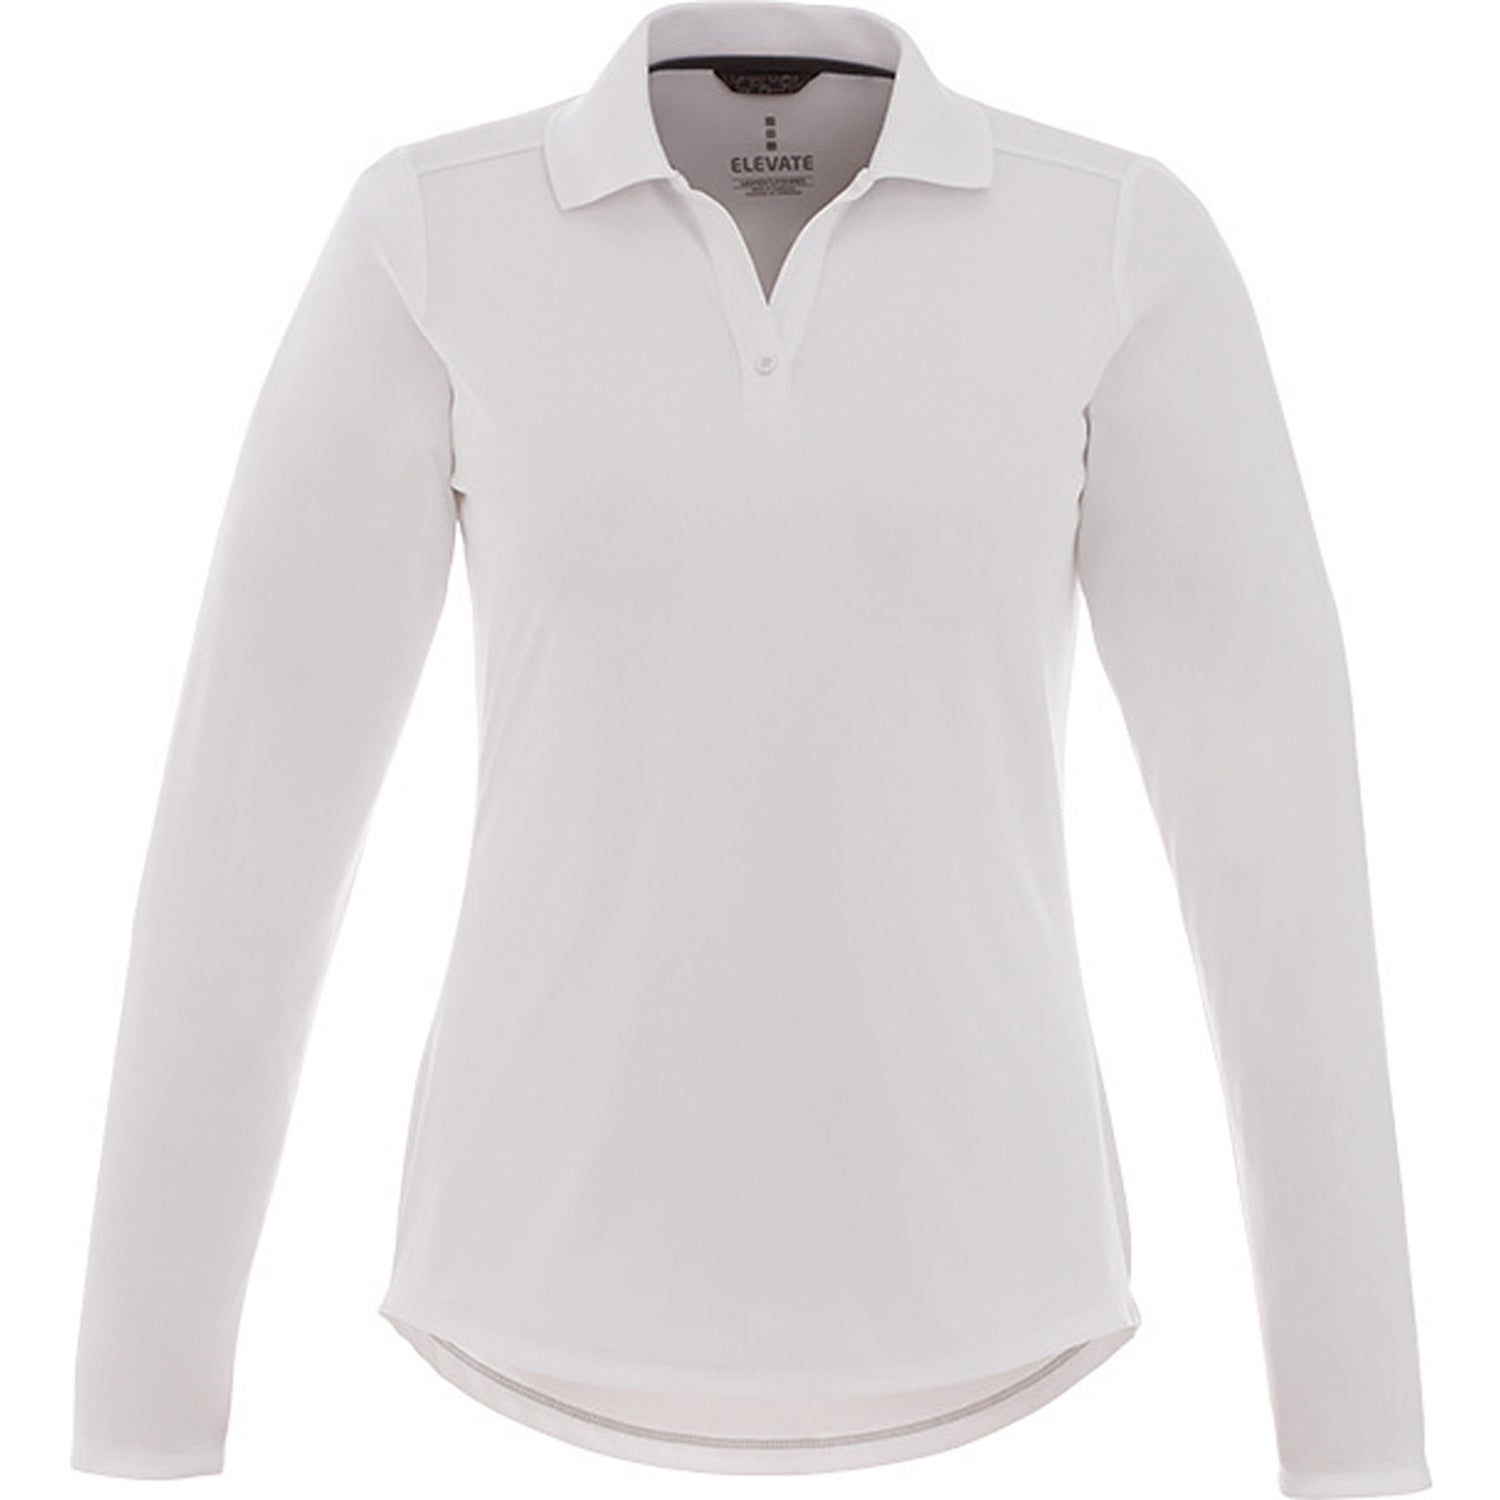 86c547d10 CLICK HERE to Order Women s Mori Long Sleeve Polo Shirt by TRIMARKs Printed  with Your Logo for  29.48 Ea.